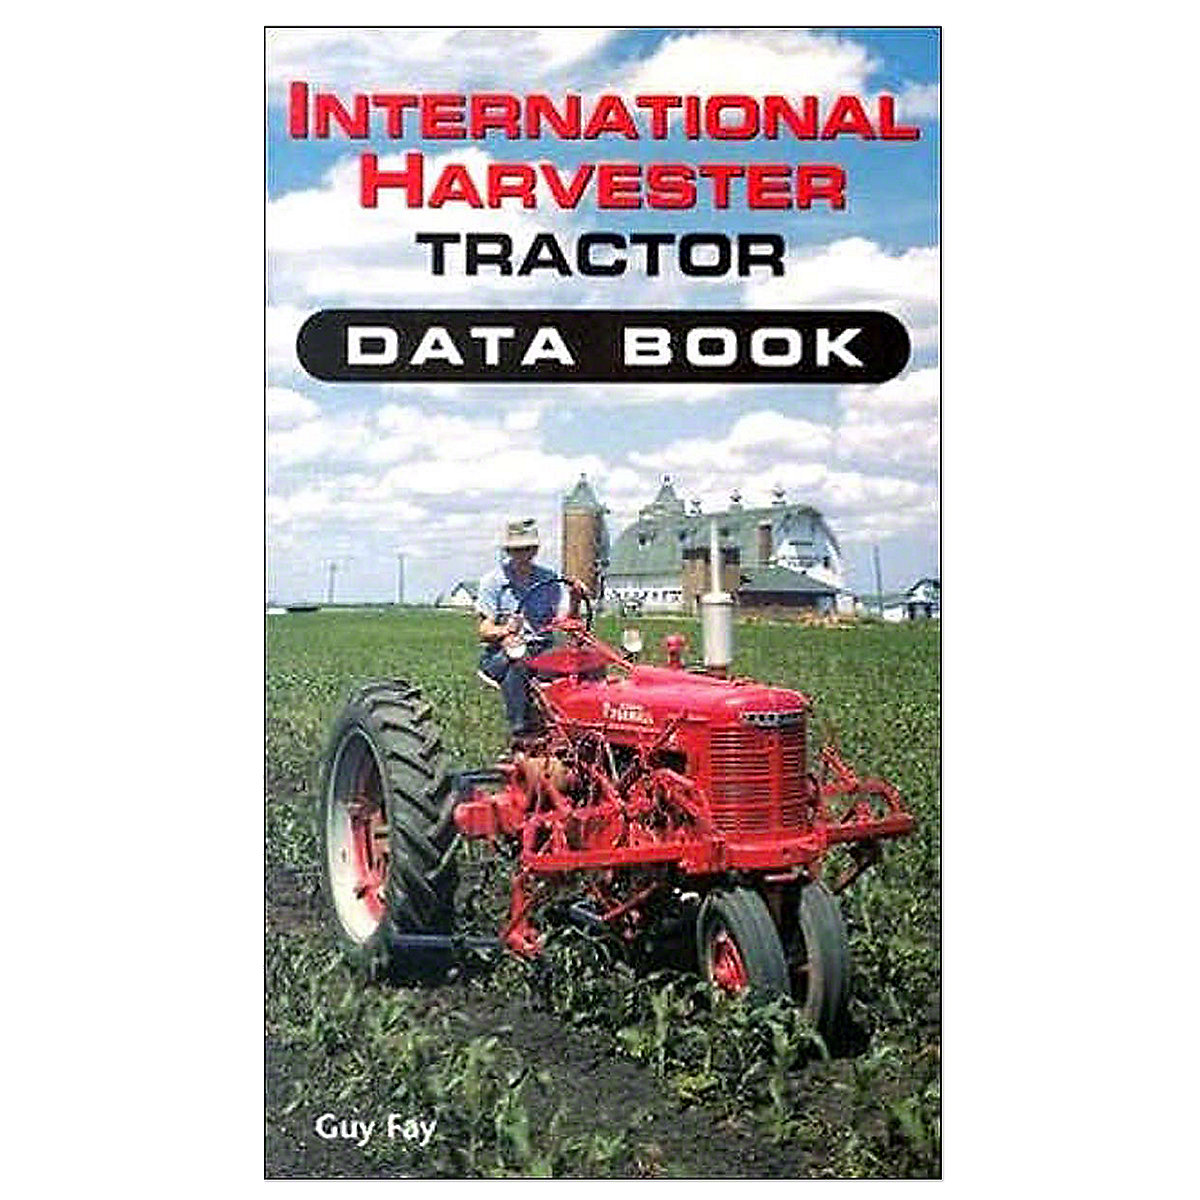 BOK054International Harvester Tractor Data Book By Guy Fay